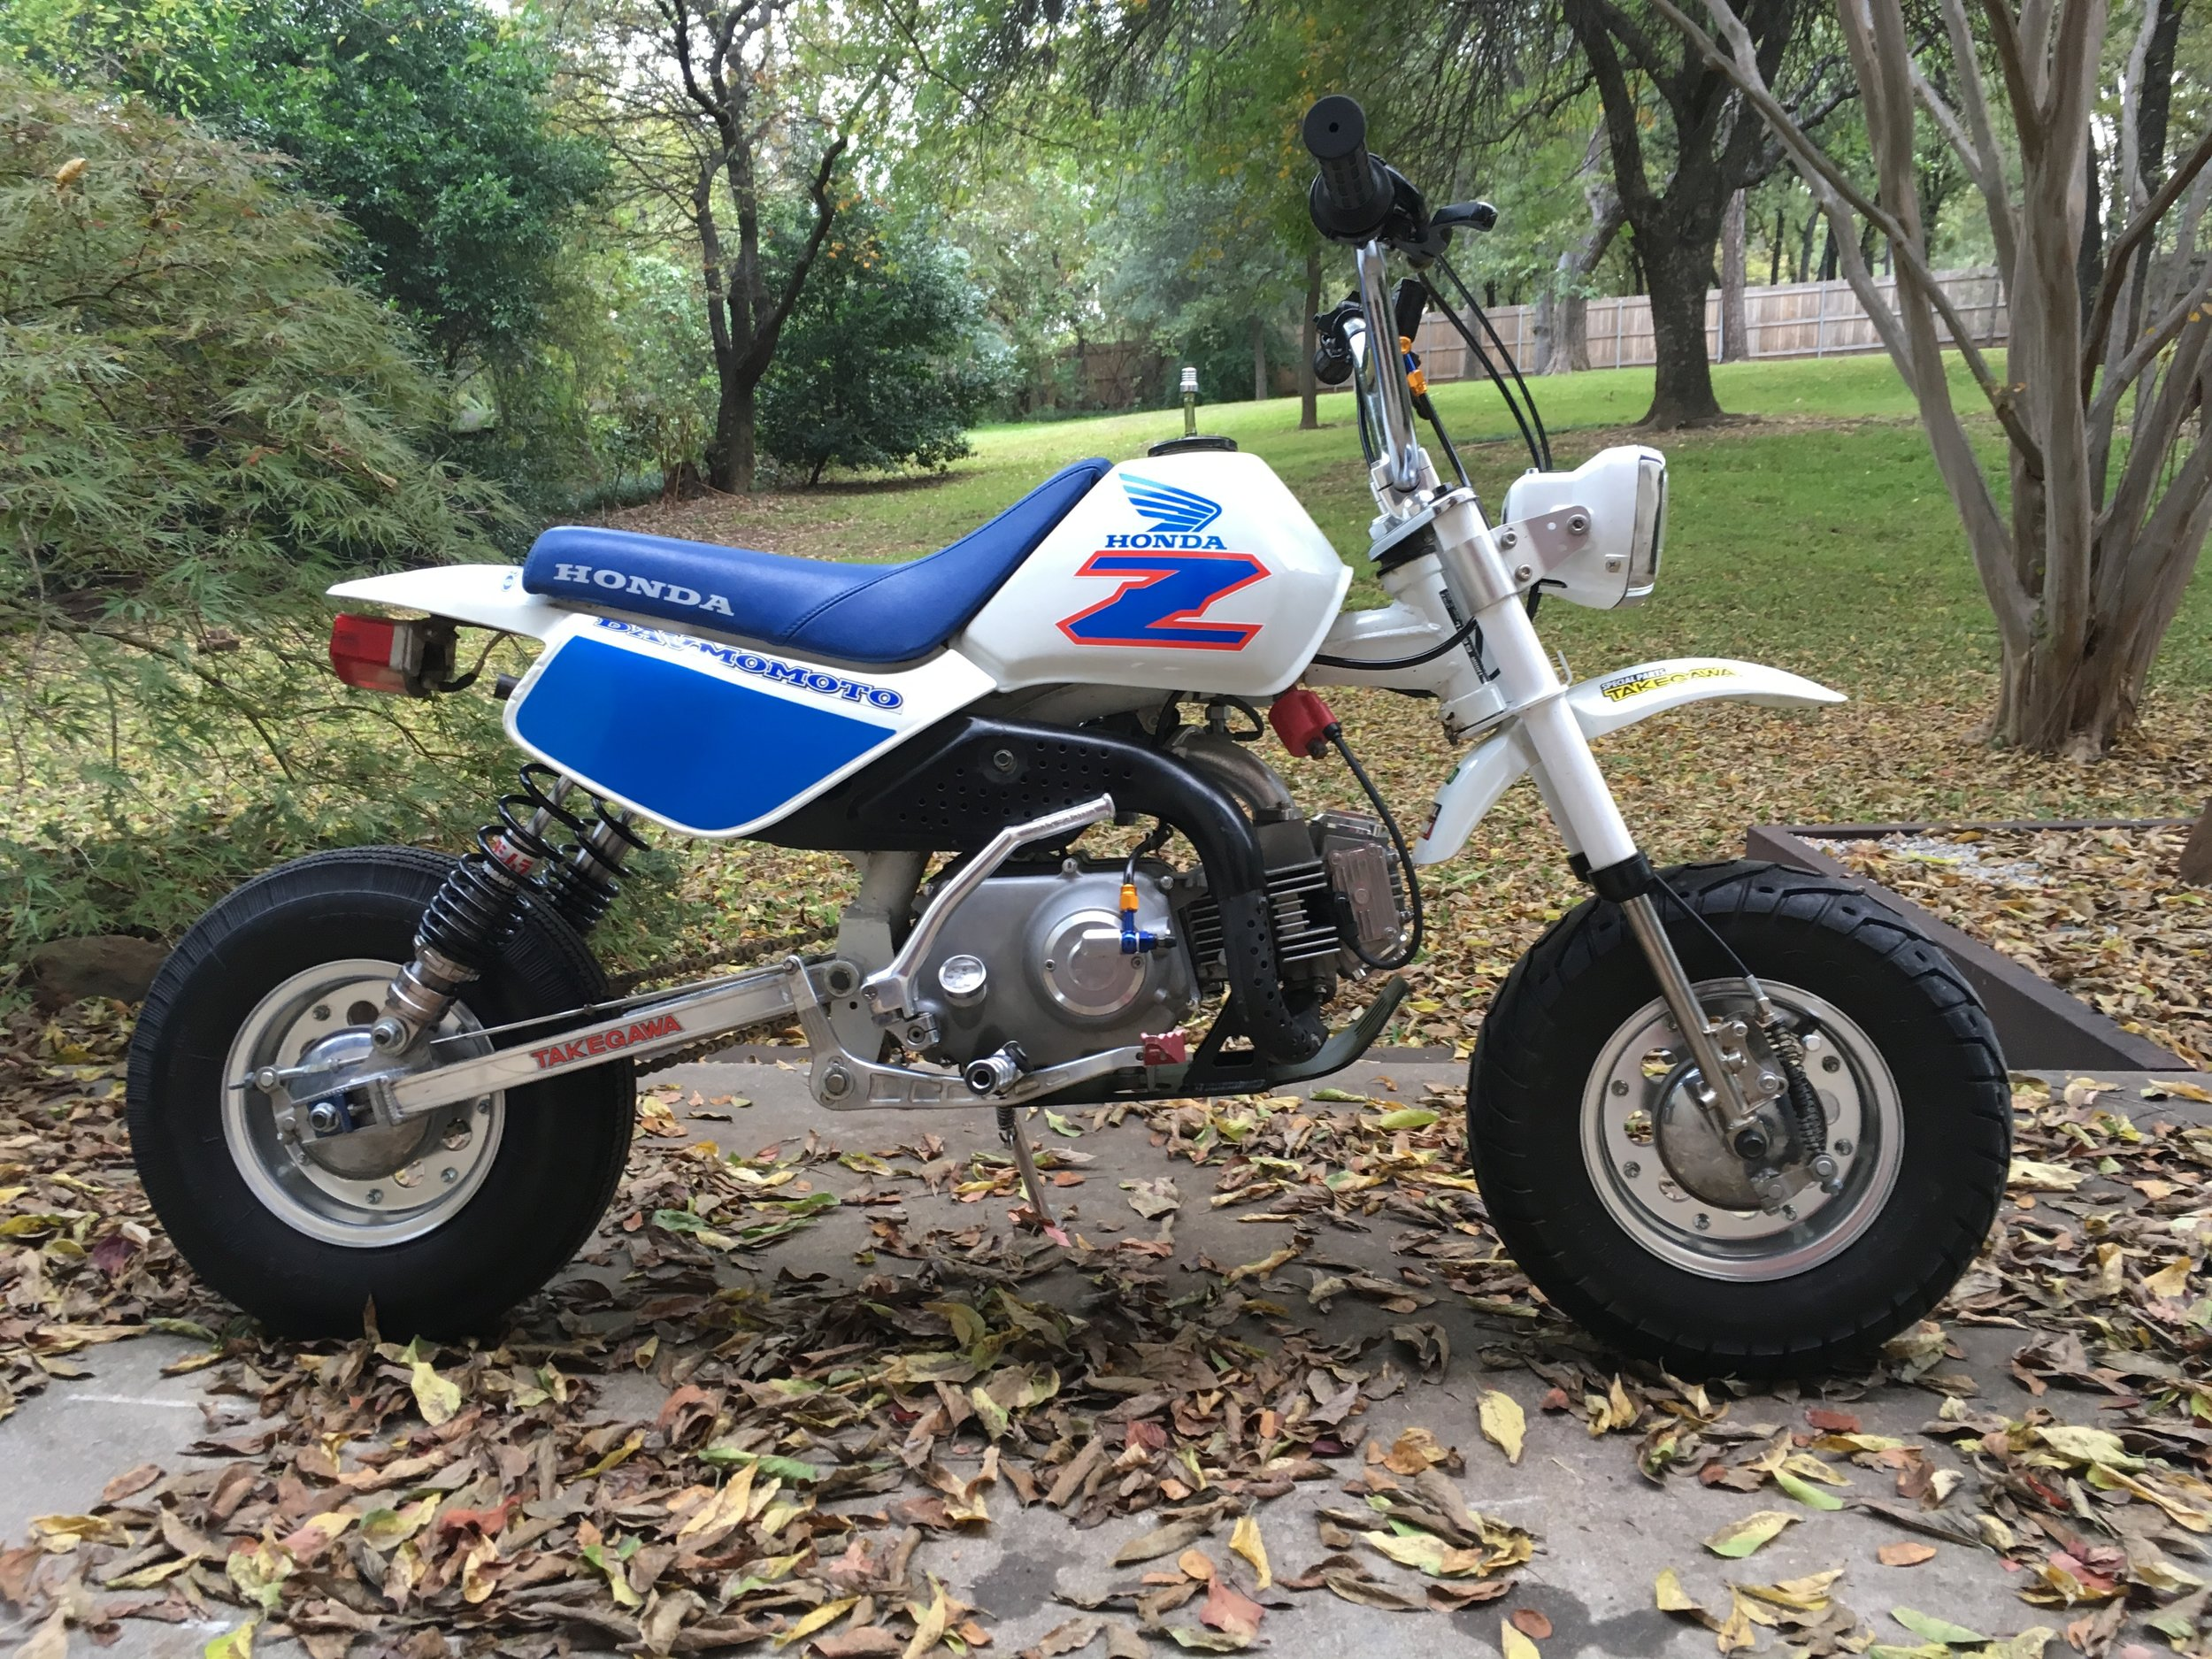 "Some changes on the 1999 Honda Z-50 ""Hater"" bike since the July post. A heavy-duty manual clutch and Takegawa hydraulic clutch actuator, a freshly repainted tank with the underside reformed to accommodate the Mikuni VM26 carb, and fresh graphics for the whole bike were some of the changes."